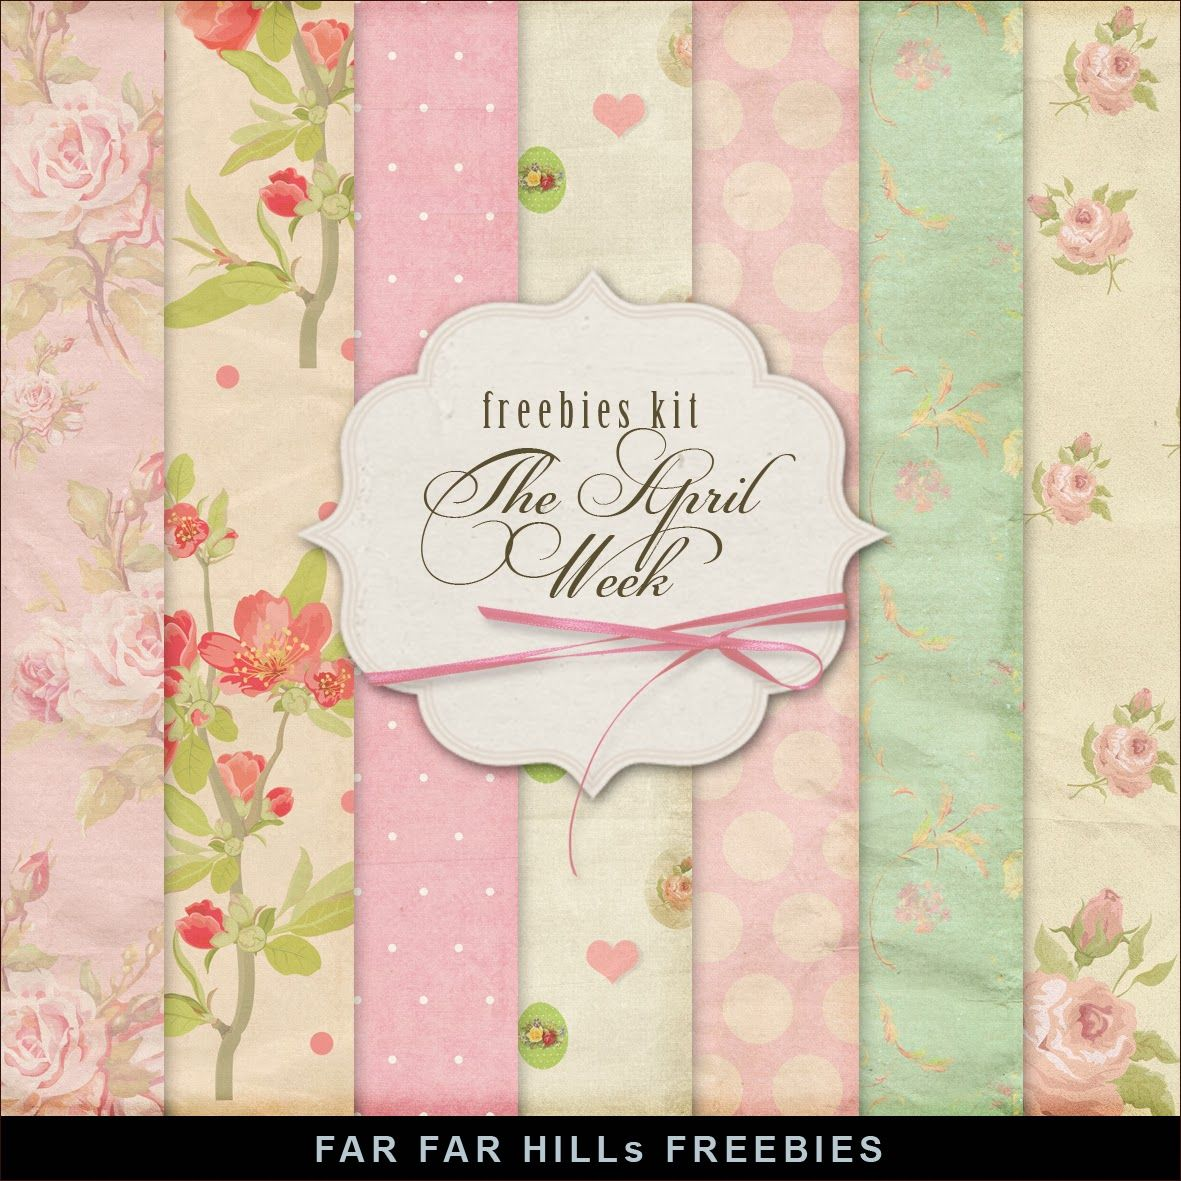 Far Far Hill: Freebies Paper Kit - The April Week